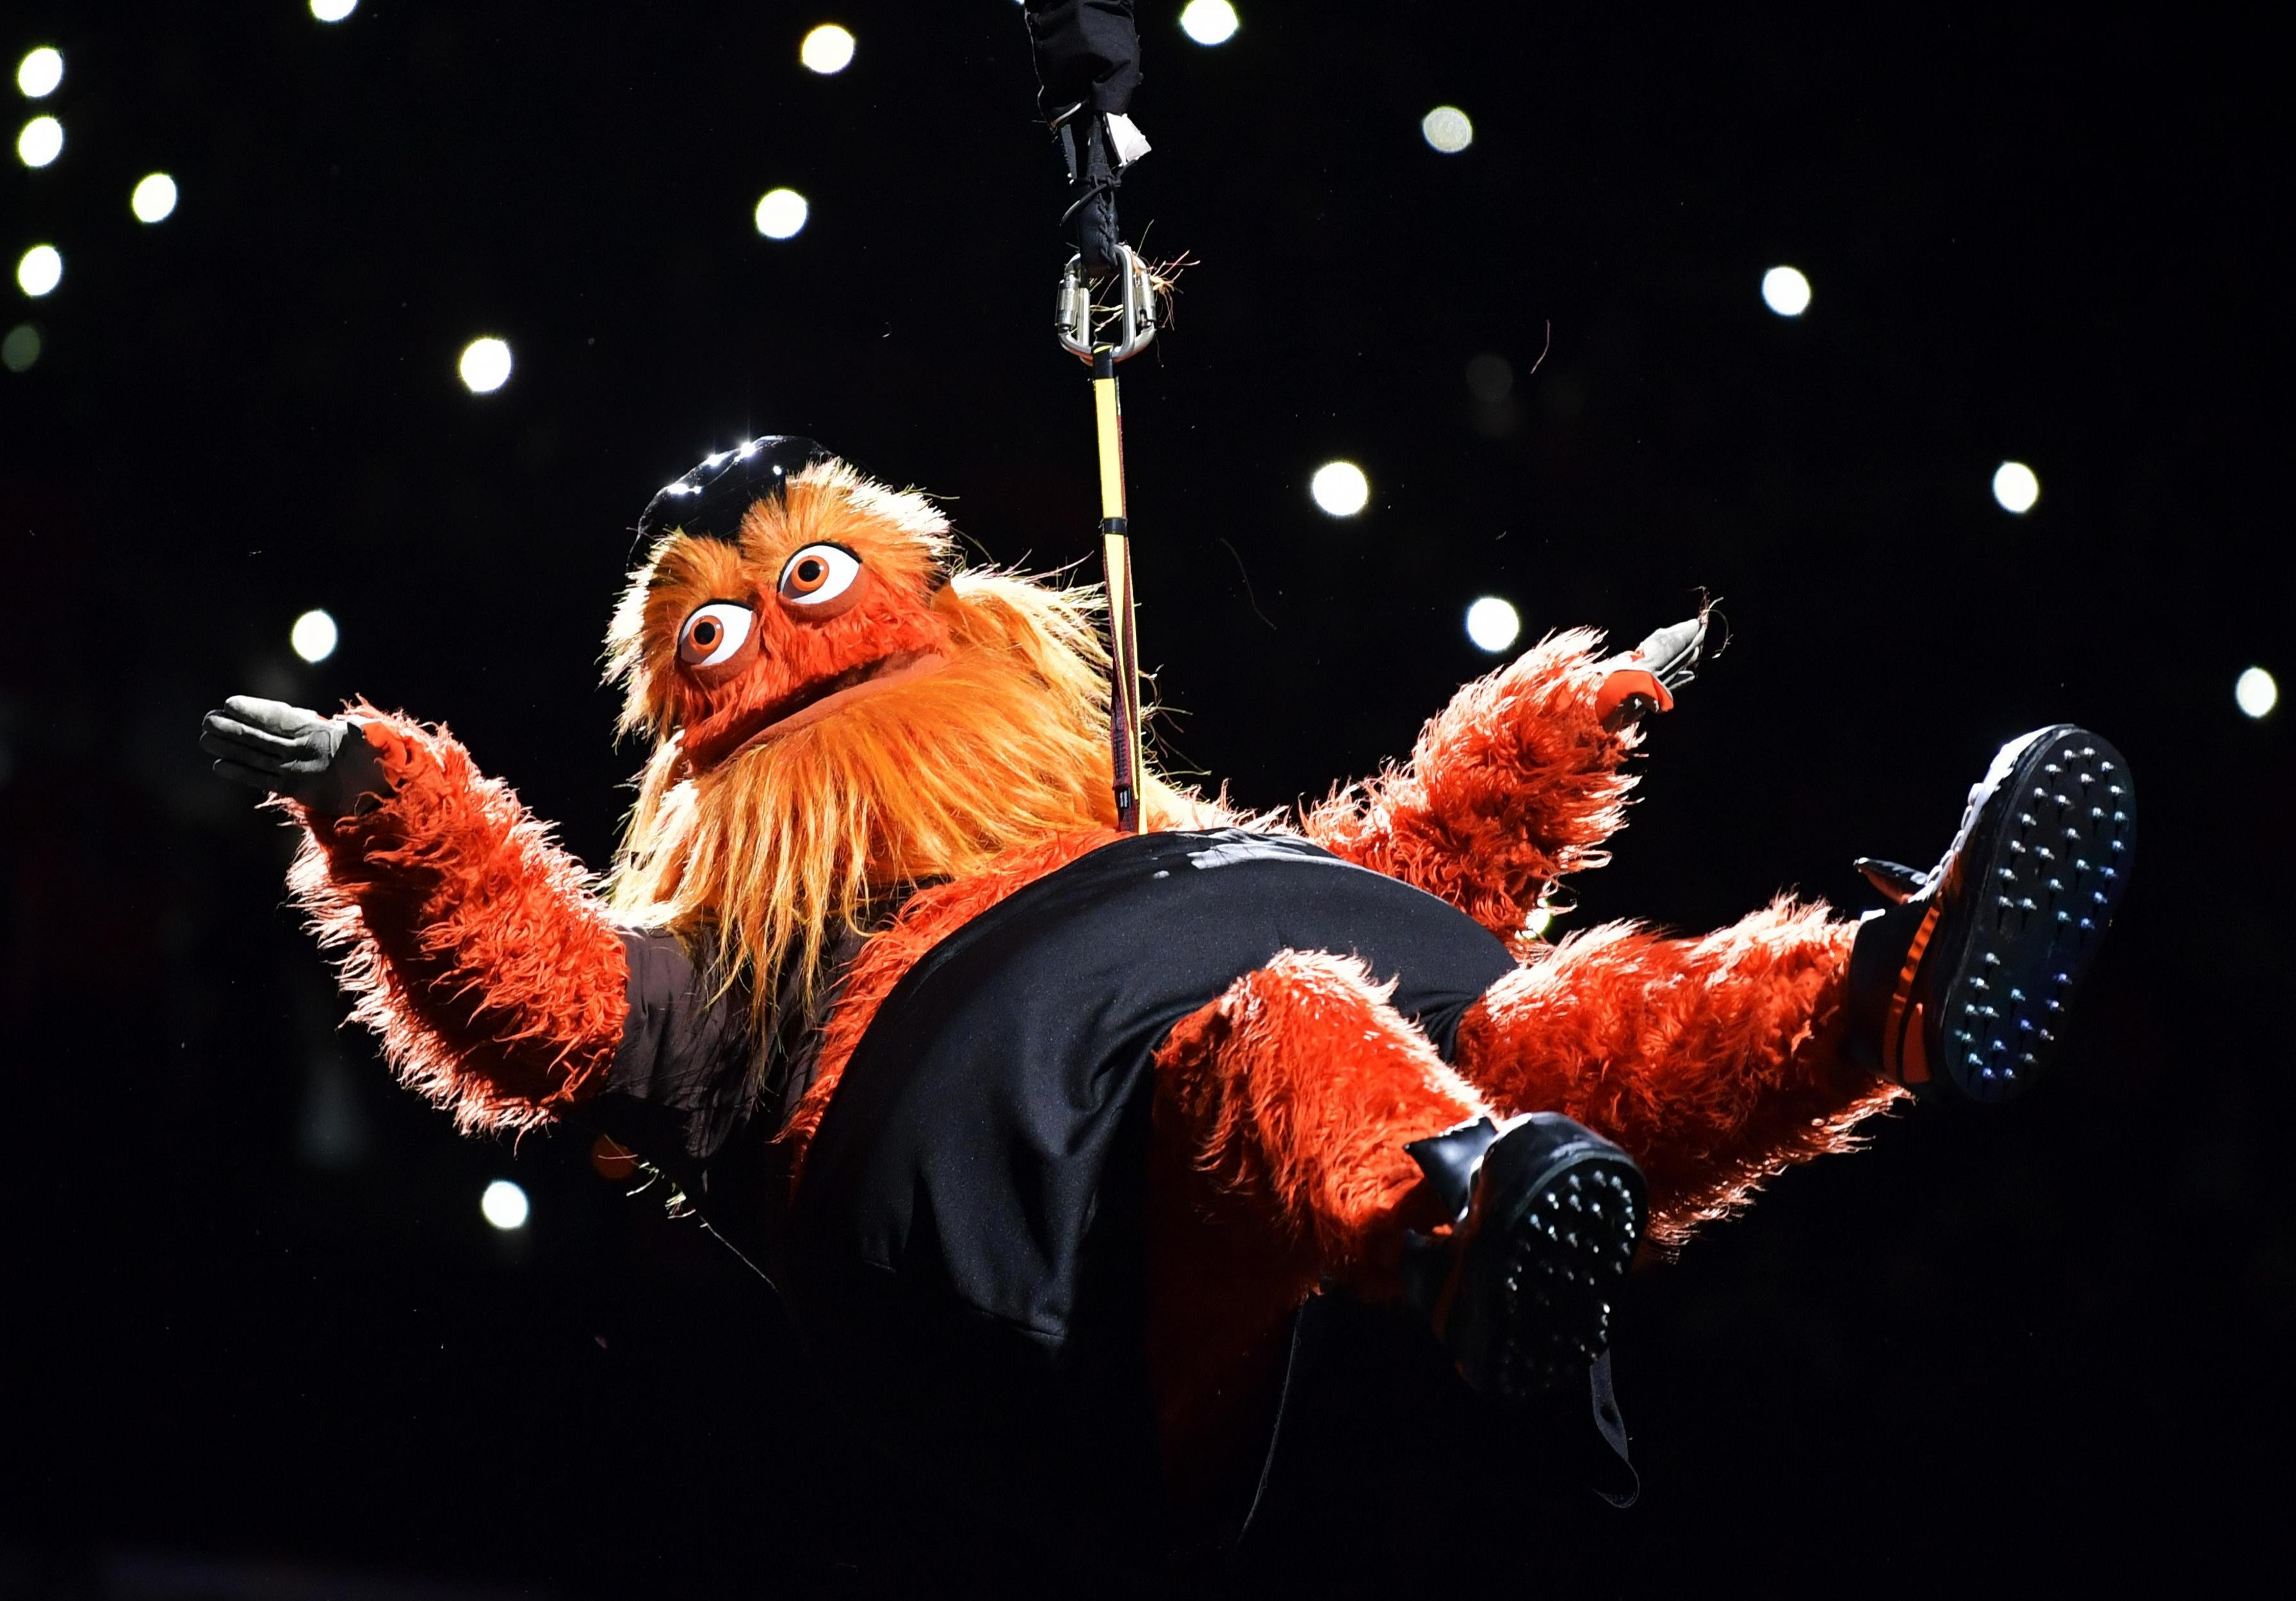 Gritty has become a media sensation in the US because of his nightmarish looks